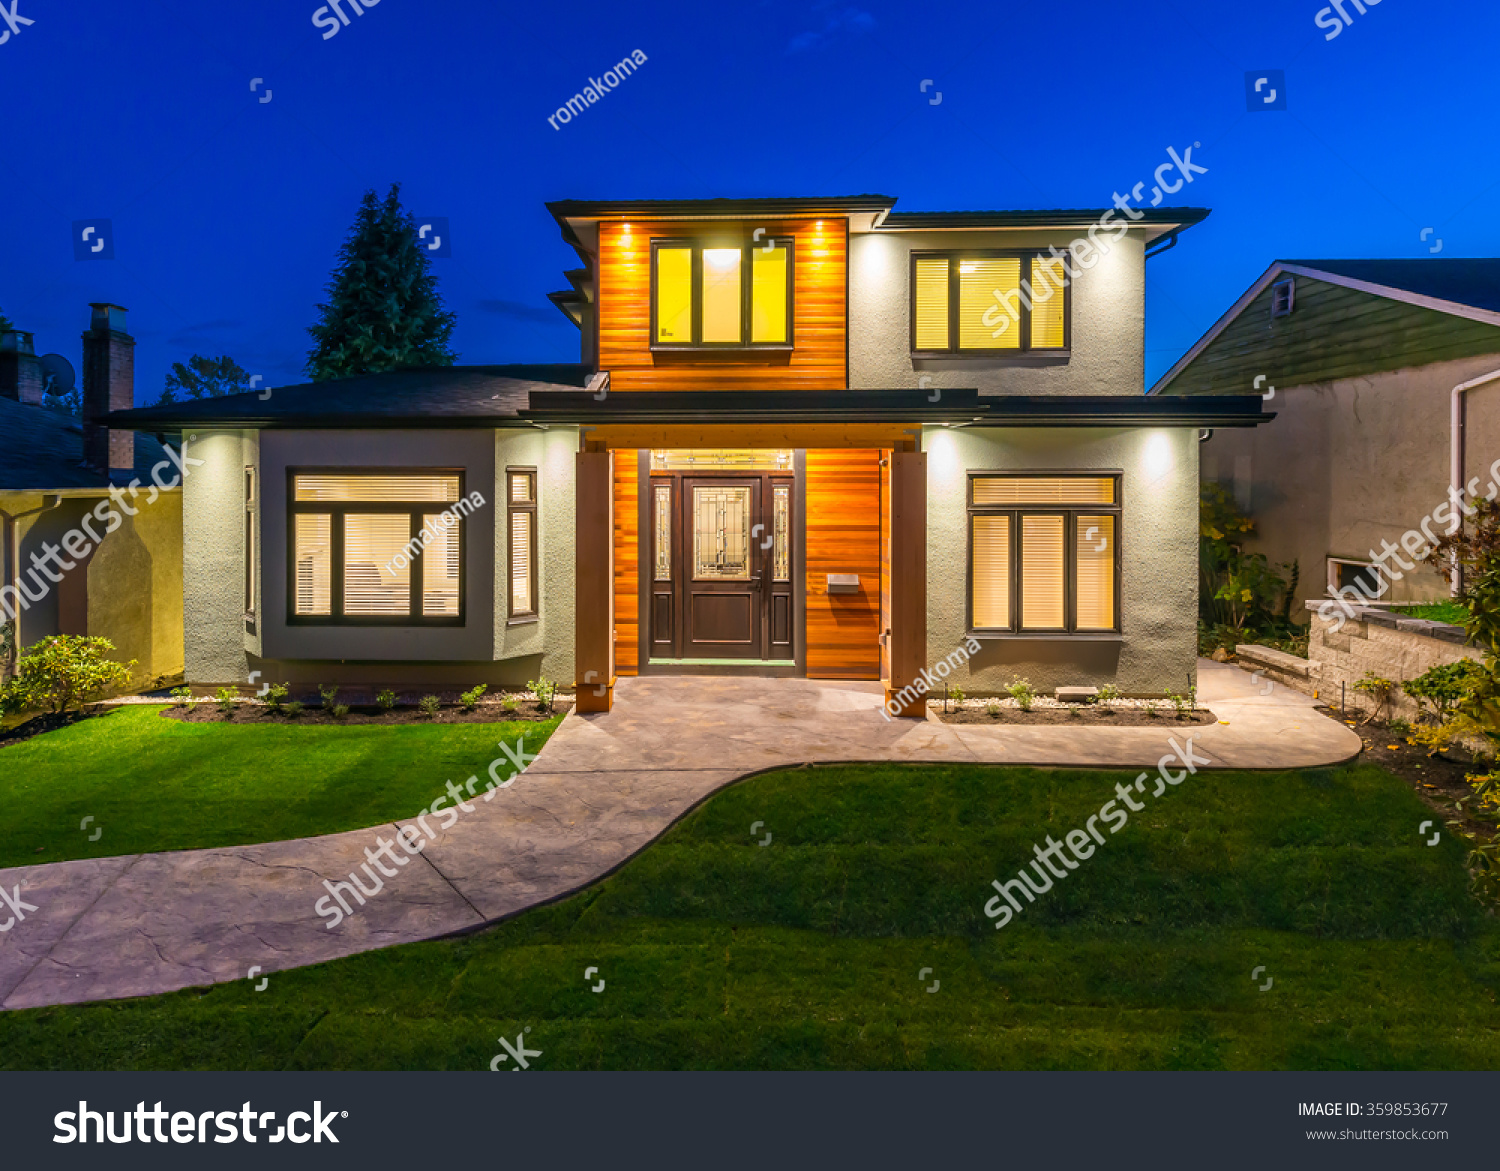 Big luxury modern house dusk night stock photo 359853677 for Modern house at night